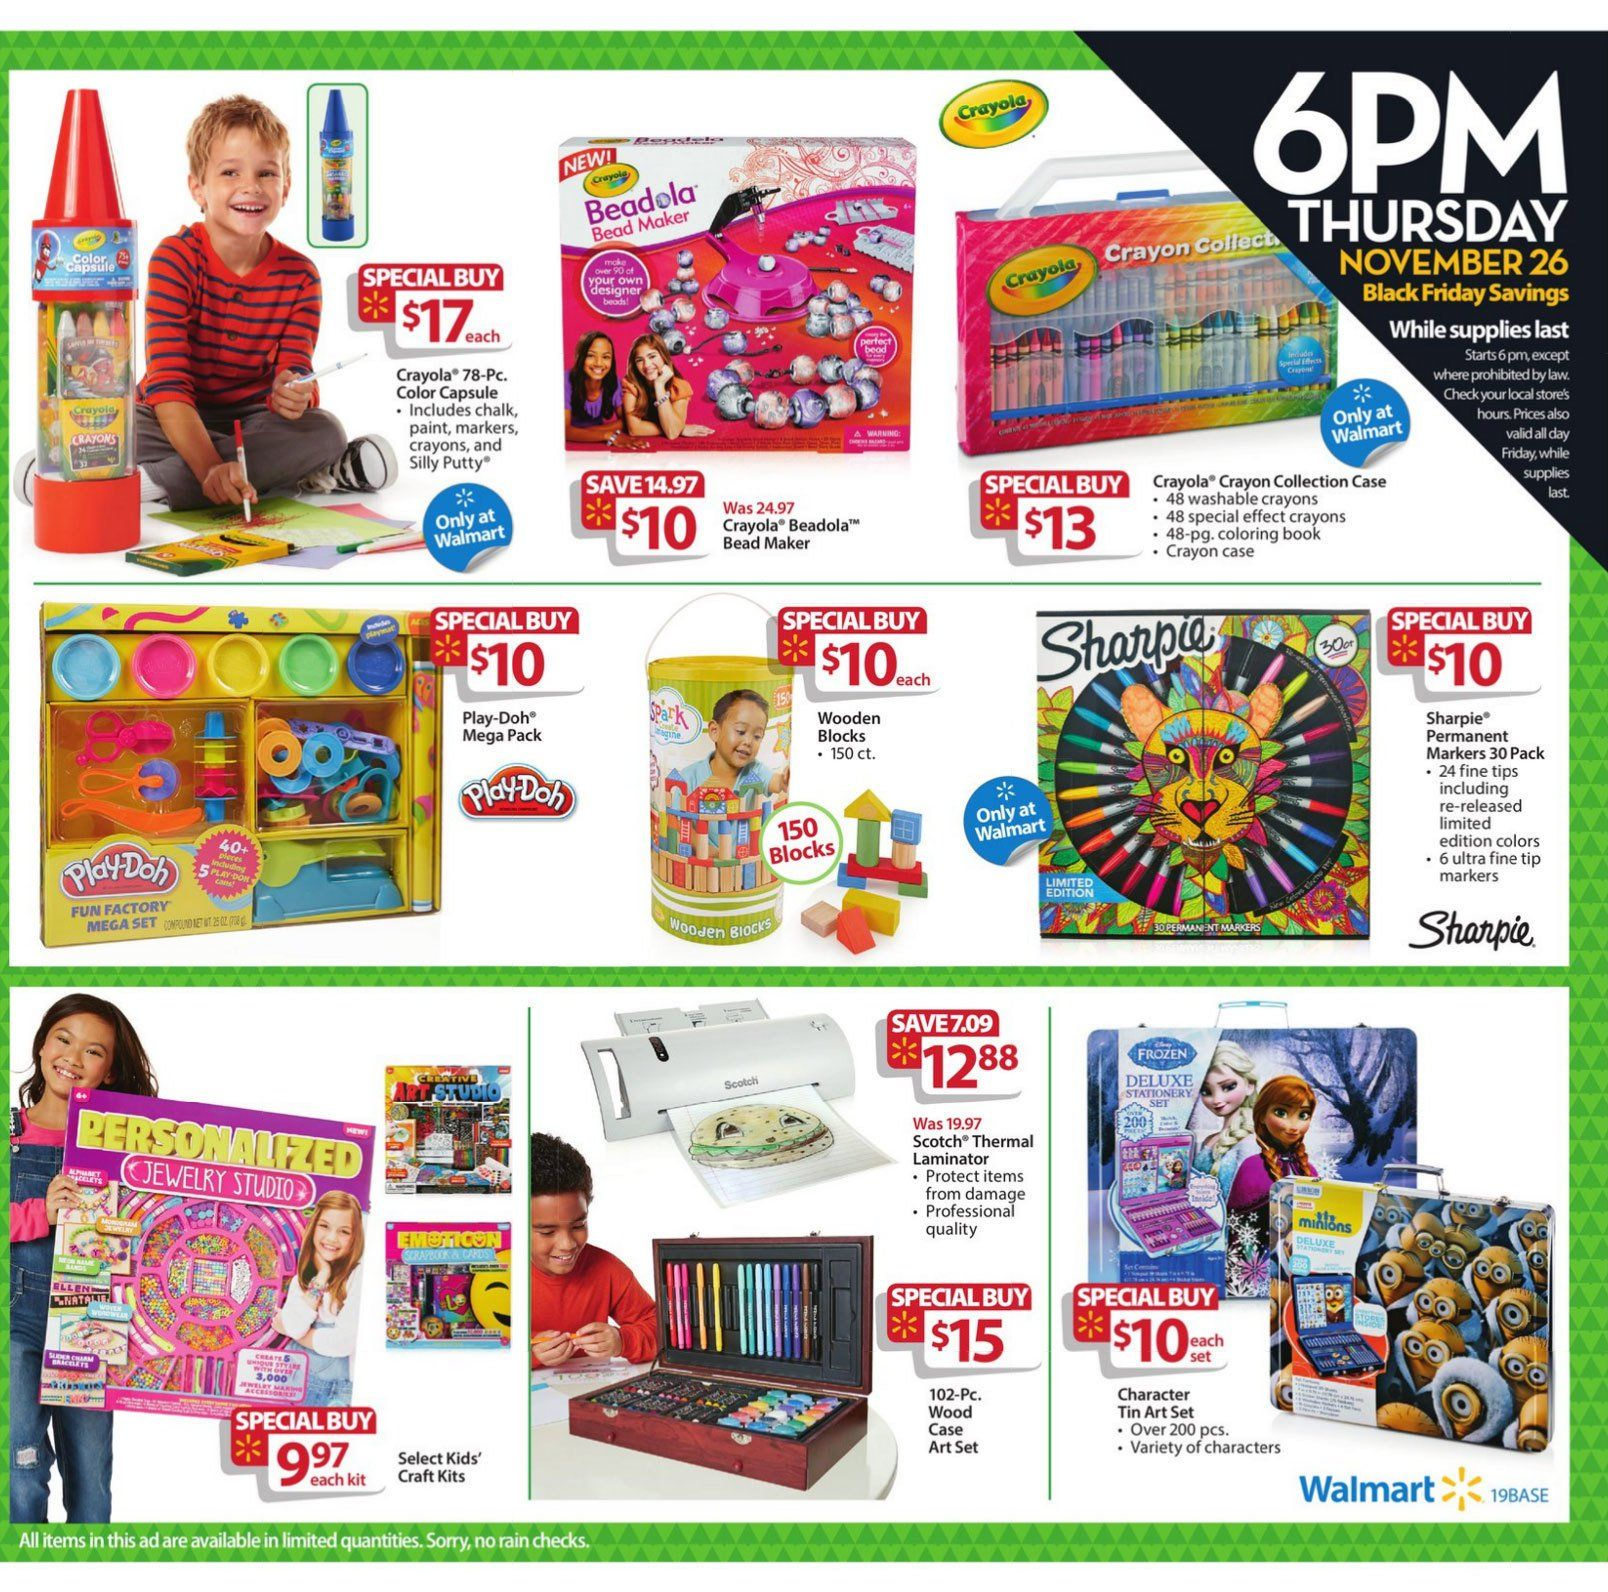 Walmart Has Released Its Black Friday Ad And Also Announced The Return Of The 1 Hour Guarantee Store Black Friday Ads Black Friday Walmart Black Friday Ad